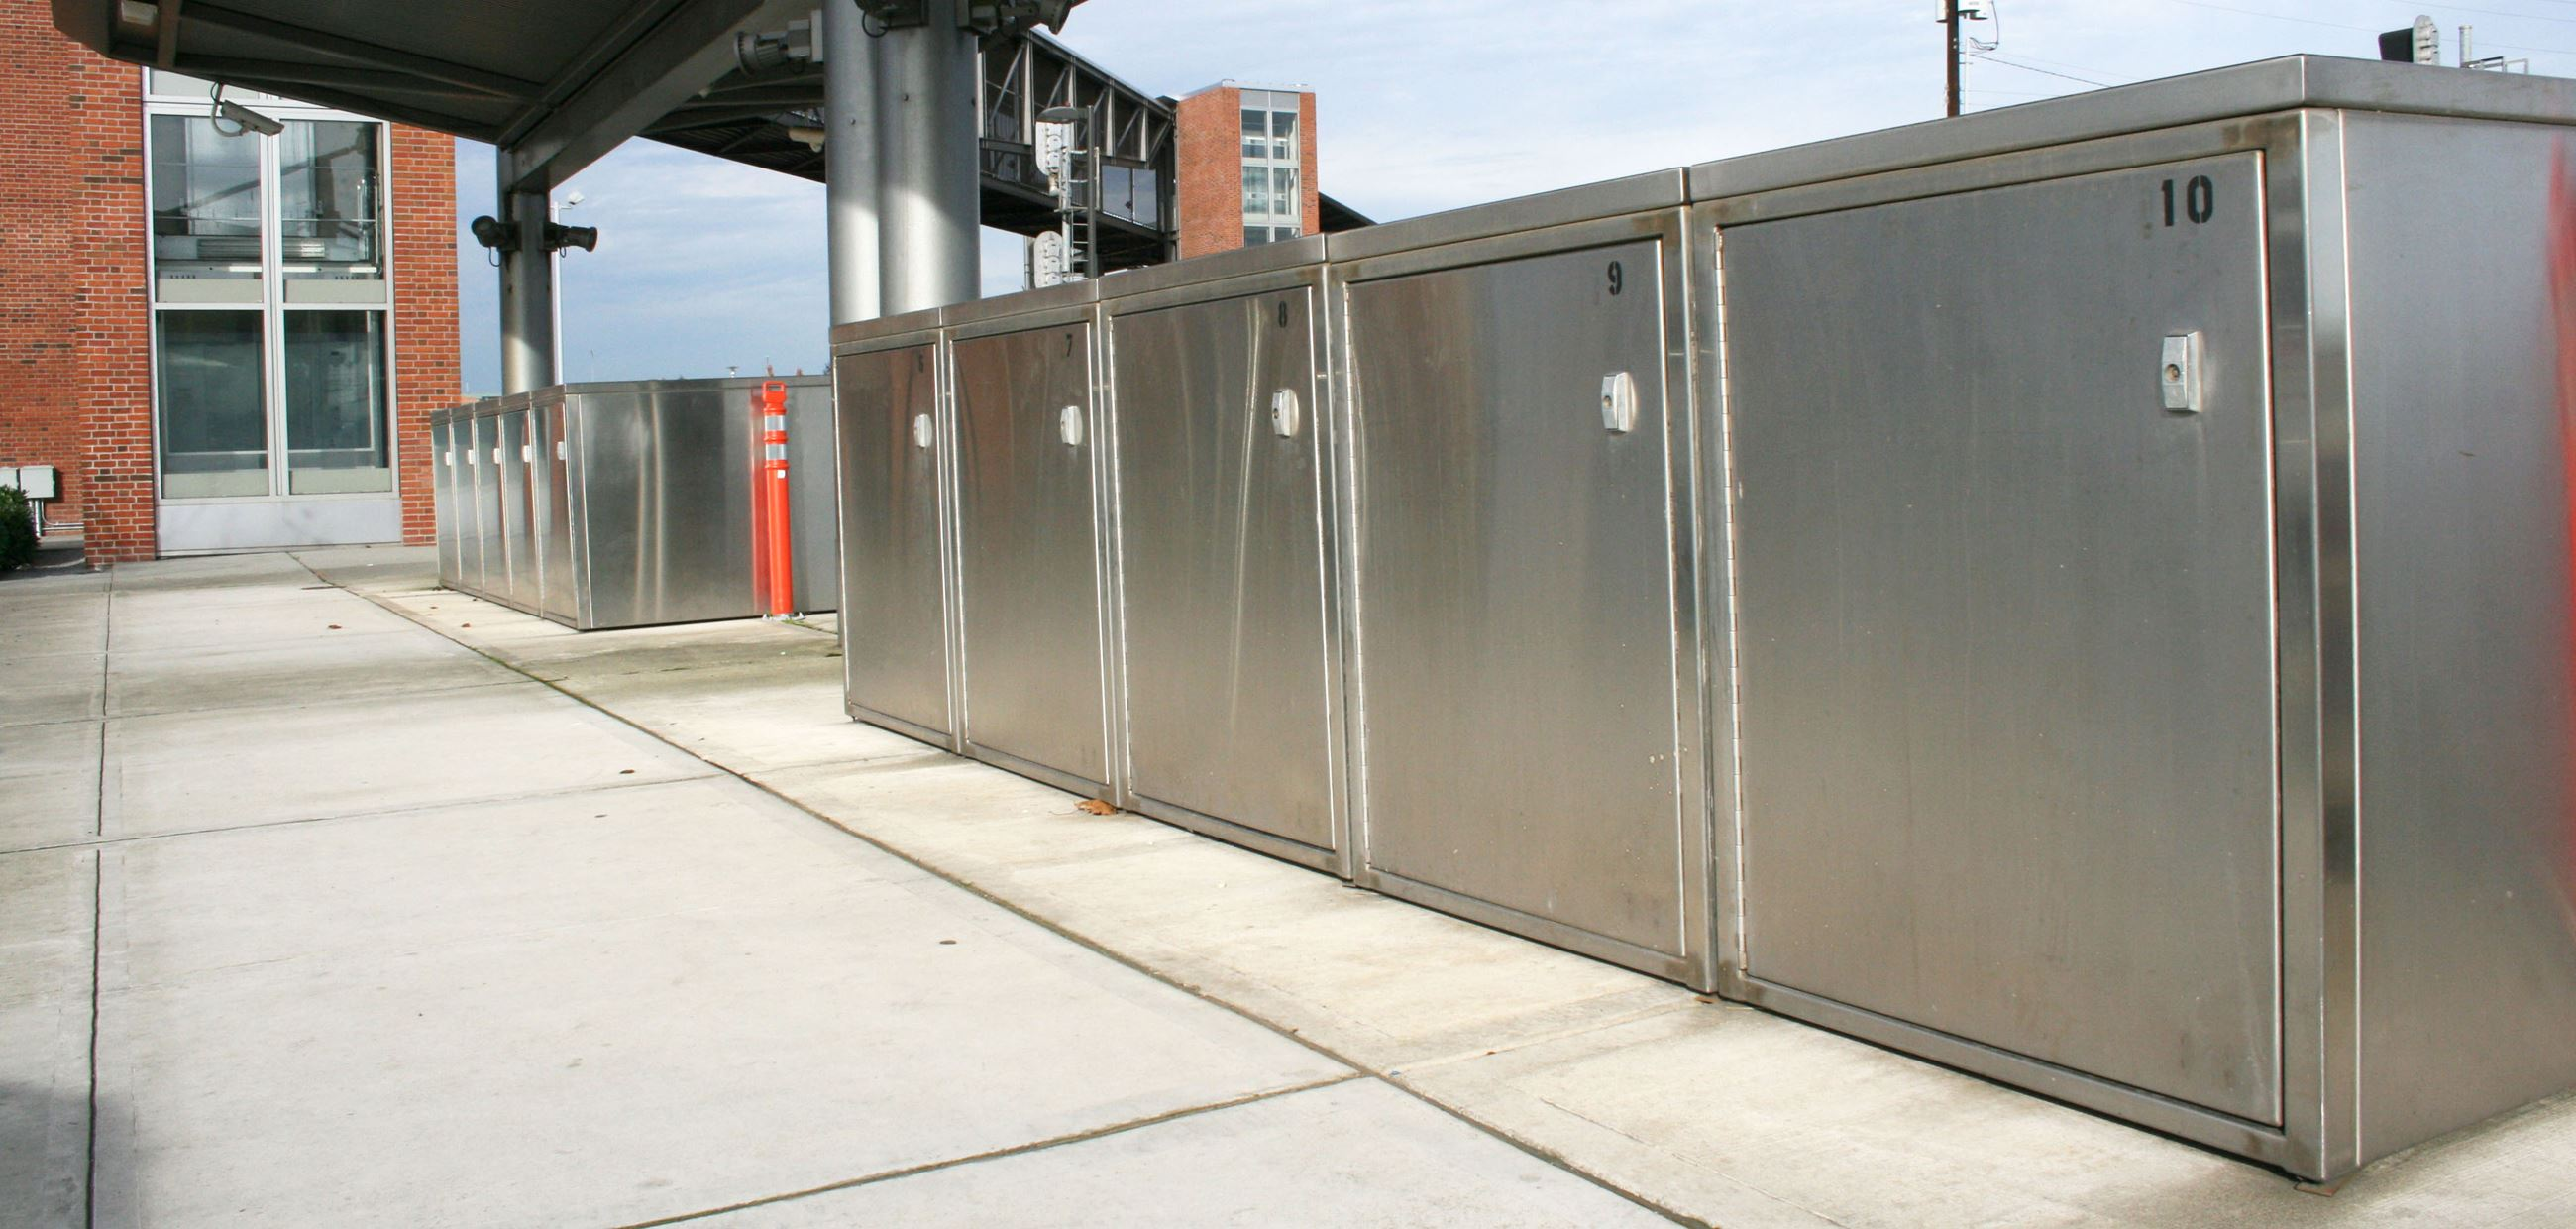 bike lockers at Everett Station